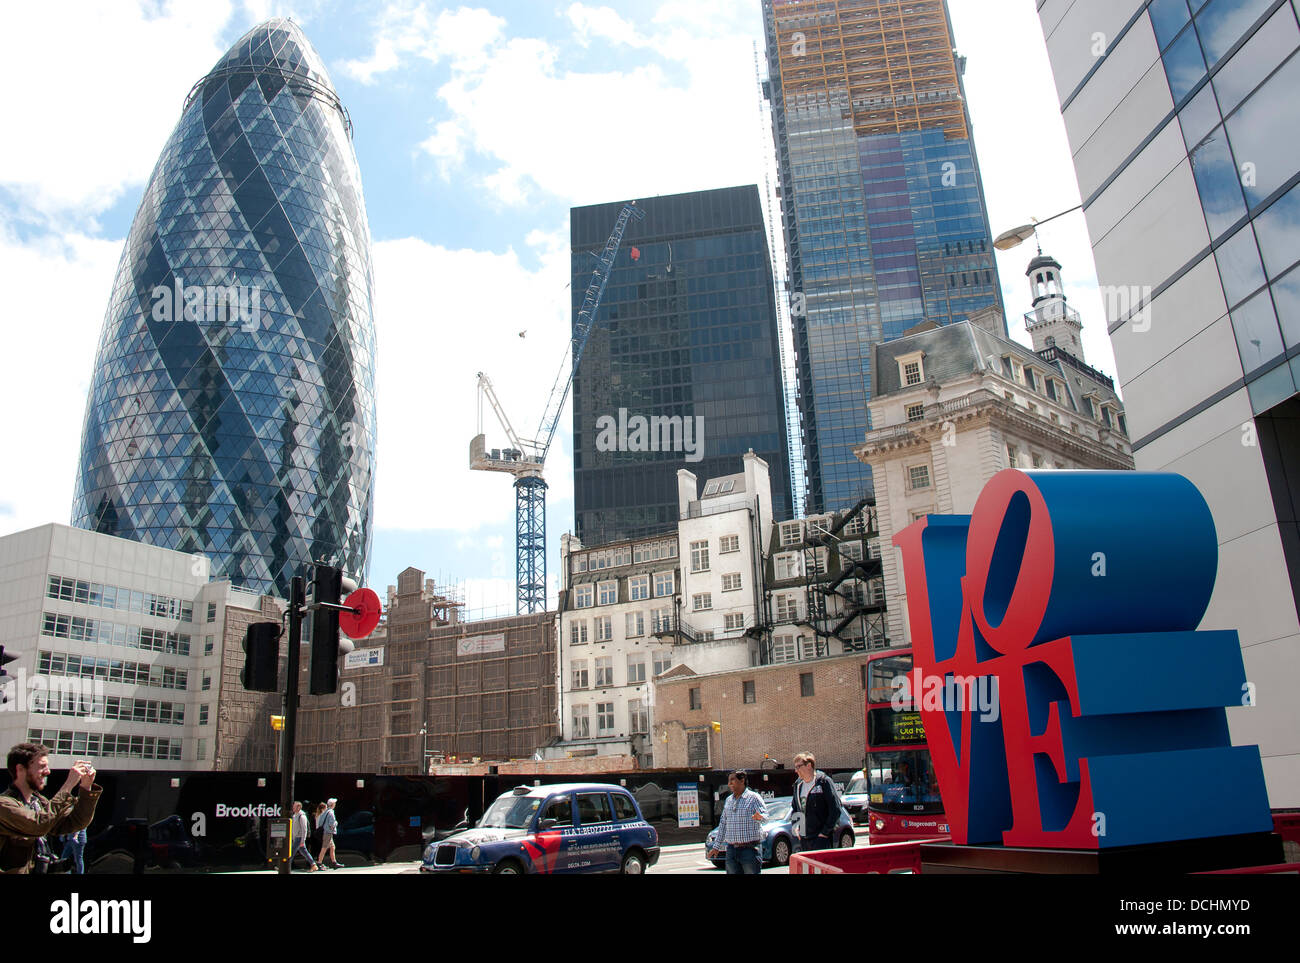 Robert Indiana's LOVE, part of a new public realm exhibition, Sculpture in the City - Stock Image